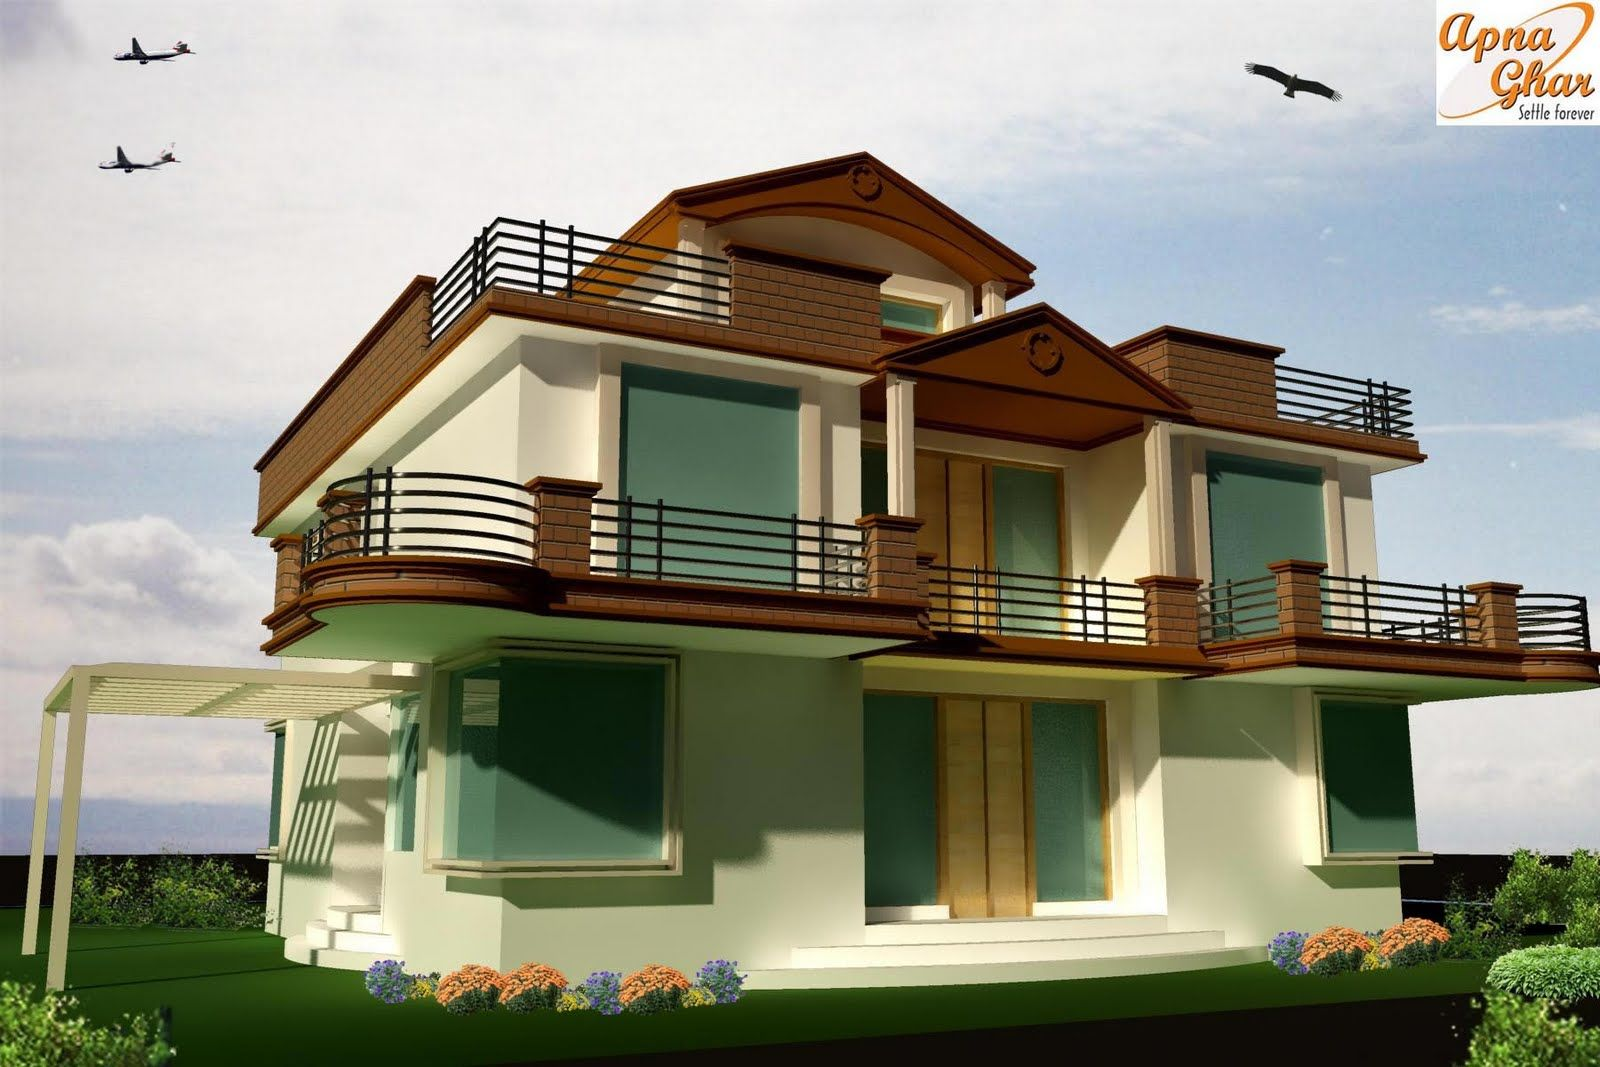 Architectural+Designs | modern-architectural-house-plans ...